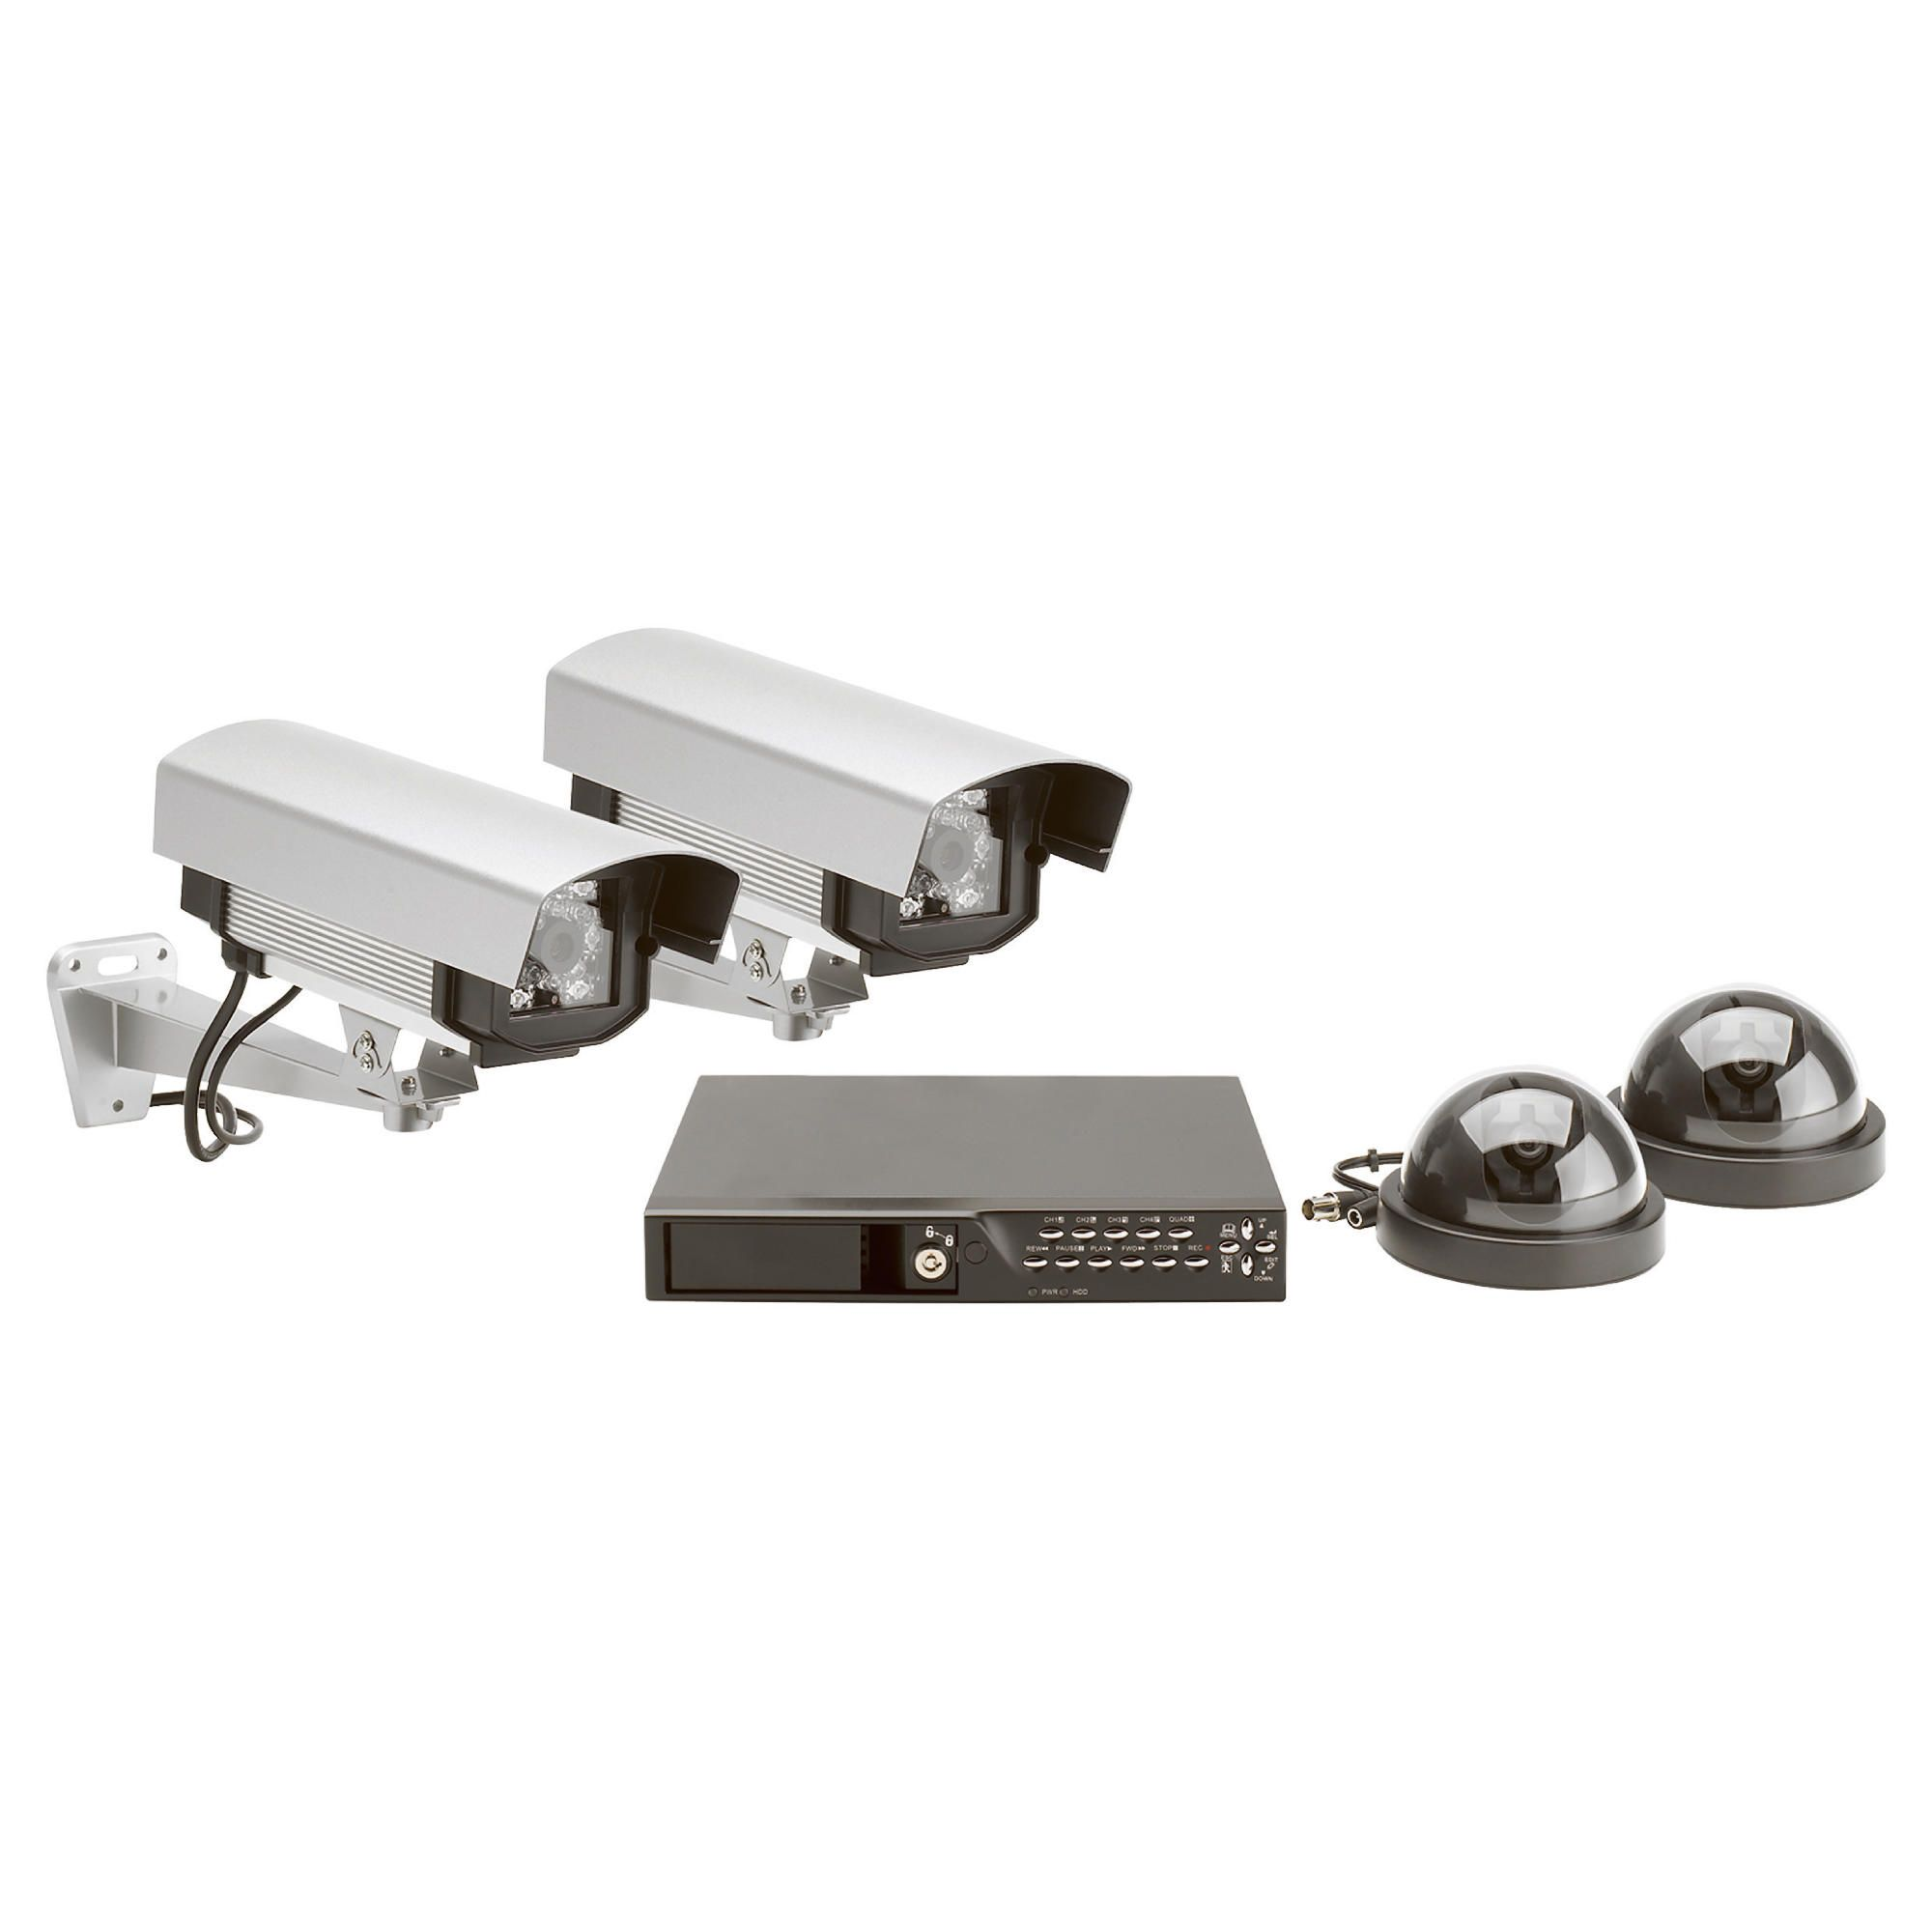 Wired Prof 4 Colour Camera and 4 Channel DVR CCTV Kit at Tesco Direct